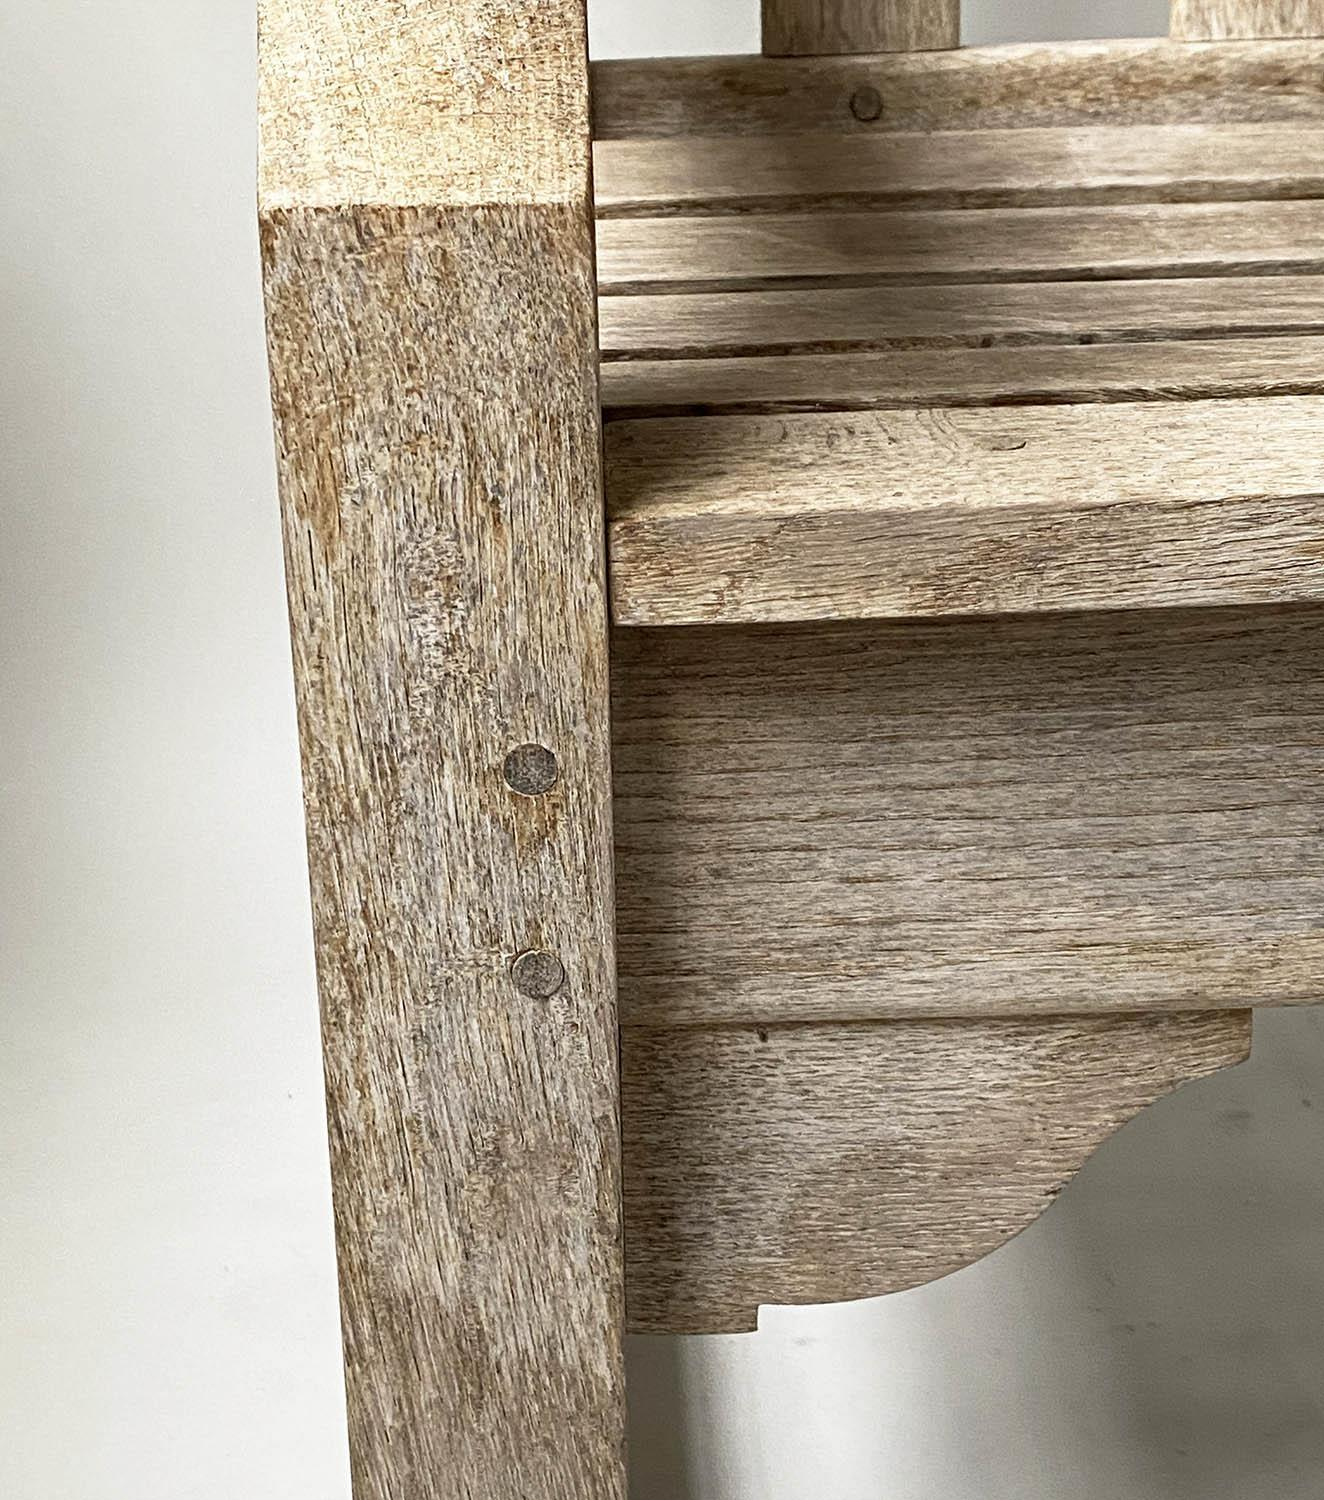 ENGLISH GARDEN BENCH, weathered English oak of substantial and slatted construction, 168cm W. - Image 7 of 8